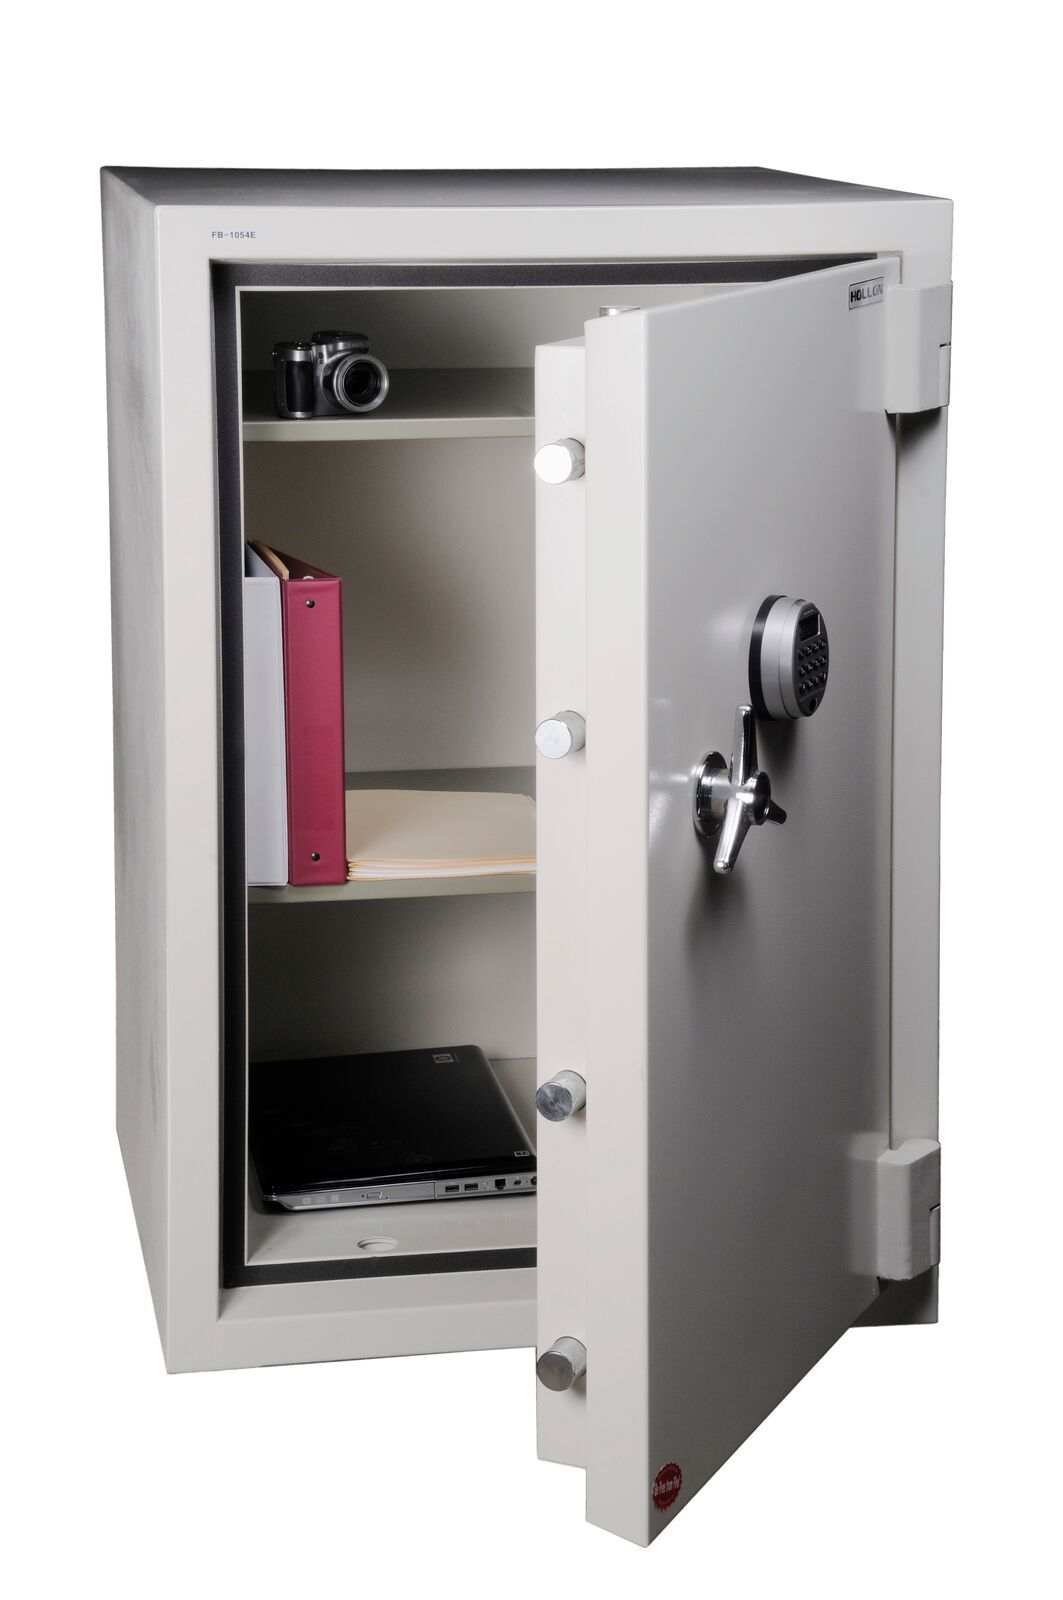 Burglar Fire Safe Products - Hollon FB-1054E Fire And Burglary Safe - Electronic Lock